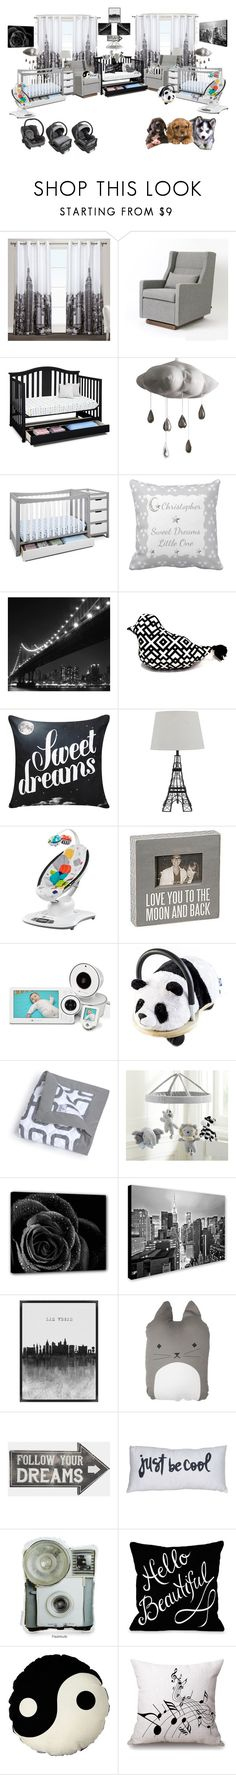 """""""basic nursery"""" by angelika-andrades ❤ liked on Polyvore featuring interior, interiors, interior design, home, home decor, interior decorating, Exclusive Home, Gus* Modern, Graco and WALL"""